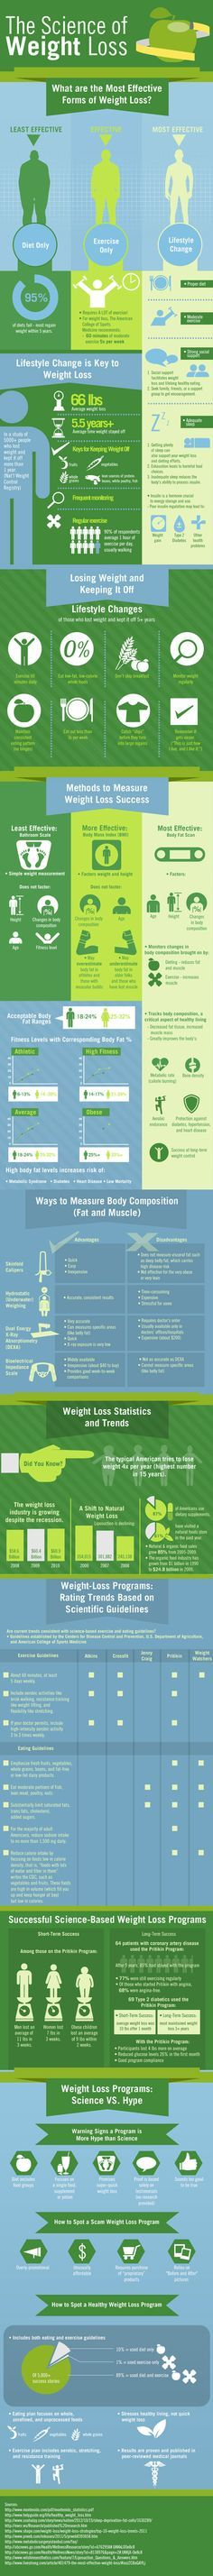 To lose weight, a person needs to use up more calories than consumed.One pound of fat equals about 3,500 calories. To lose one pound of fat, the body needs to use up 3,500 calories. By creating a